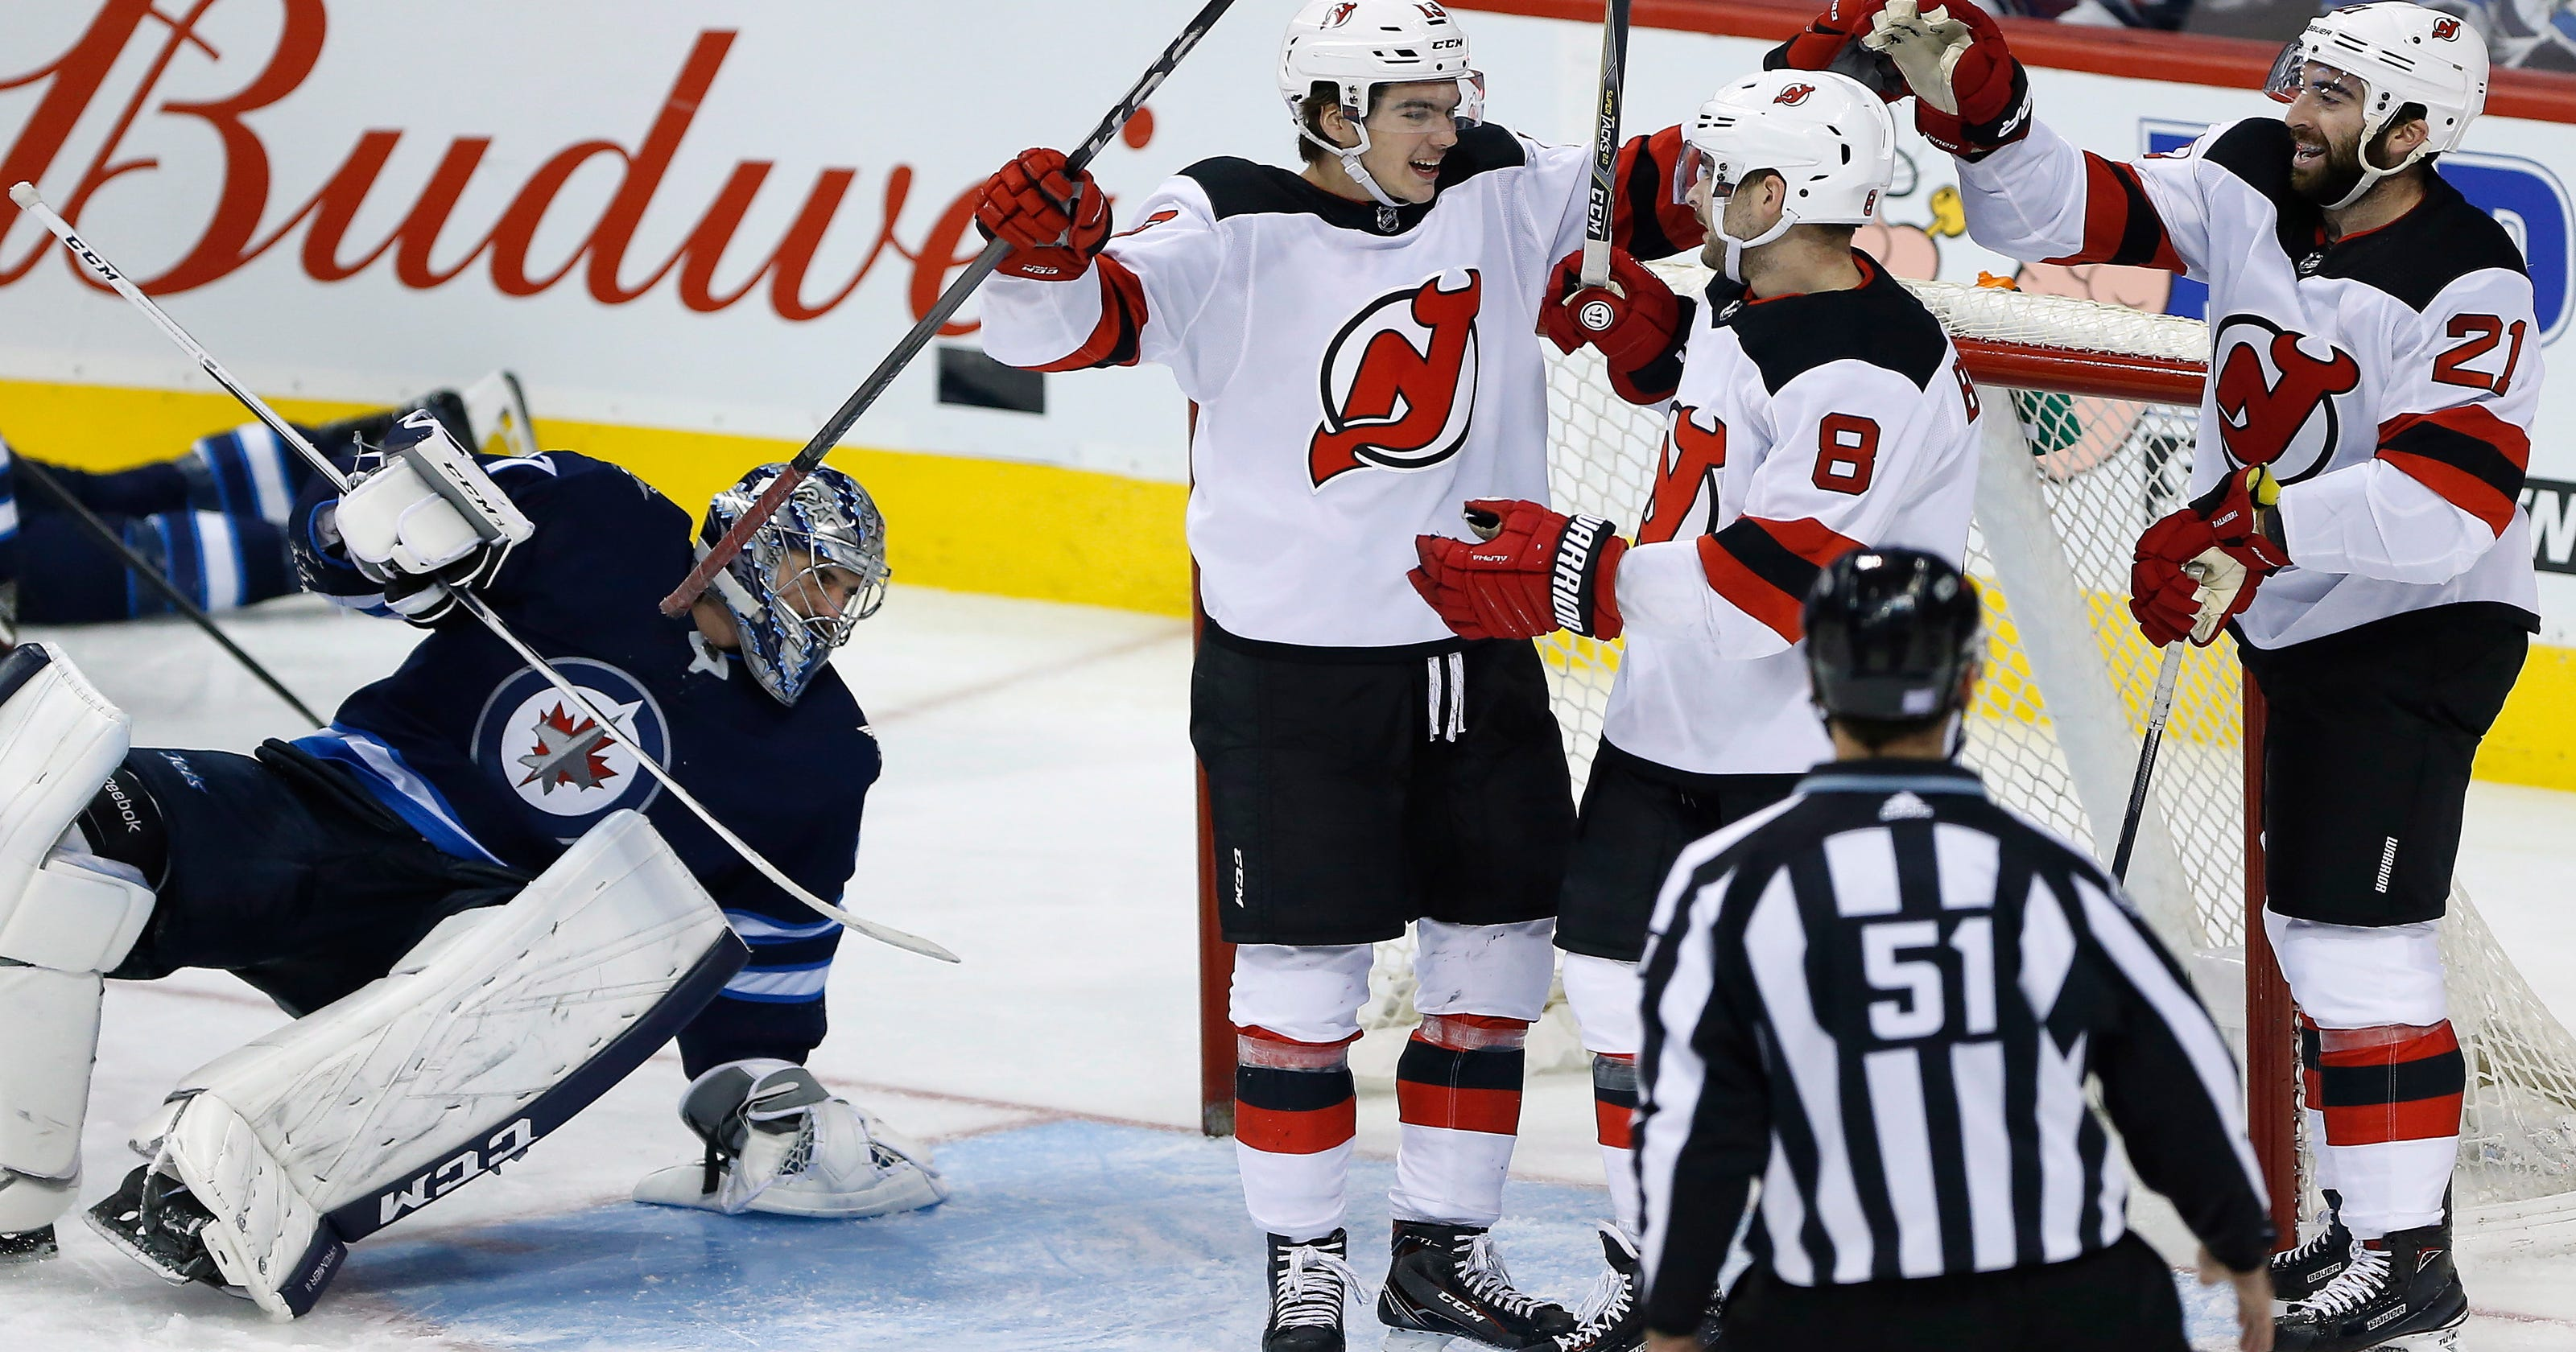 de4a2c595 Devils Will Butcher scores his first NHL goal in 5-2 loss to the Jets